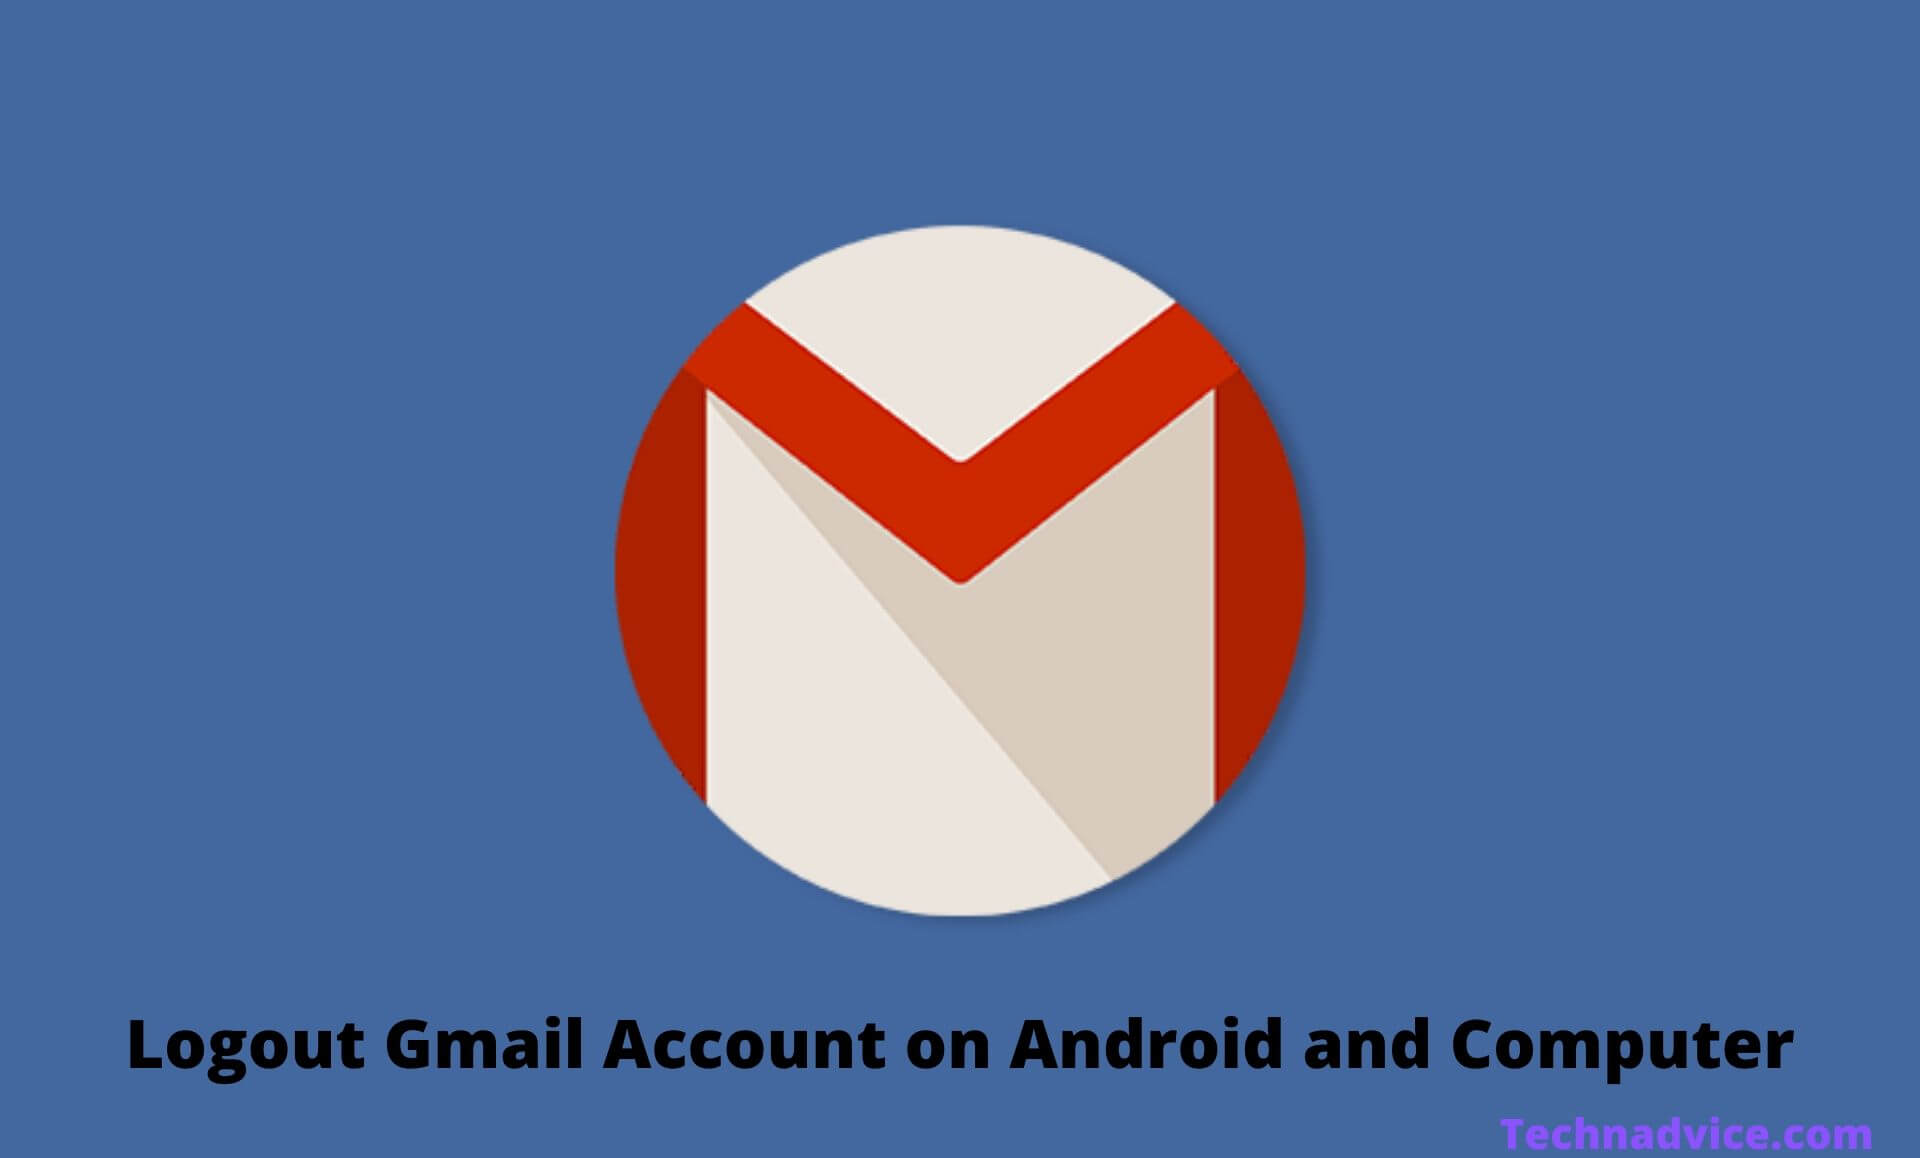 How To Logout Gmail Account on Android and Computer